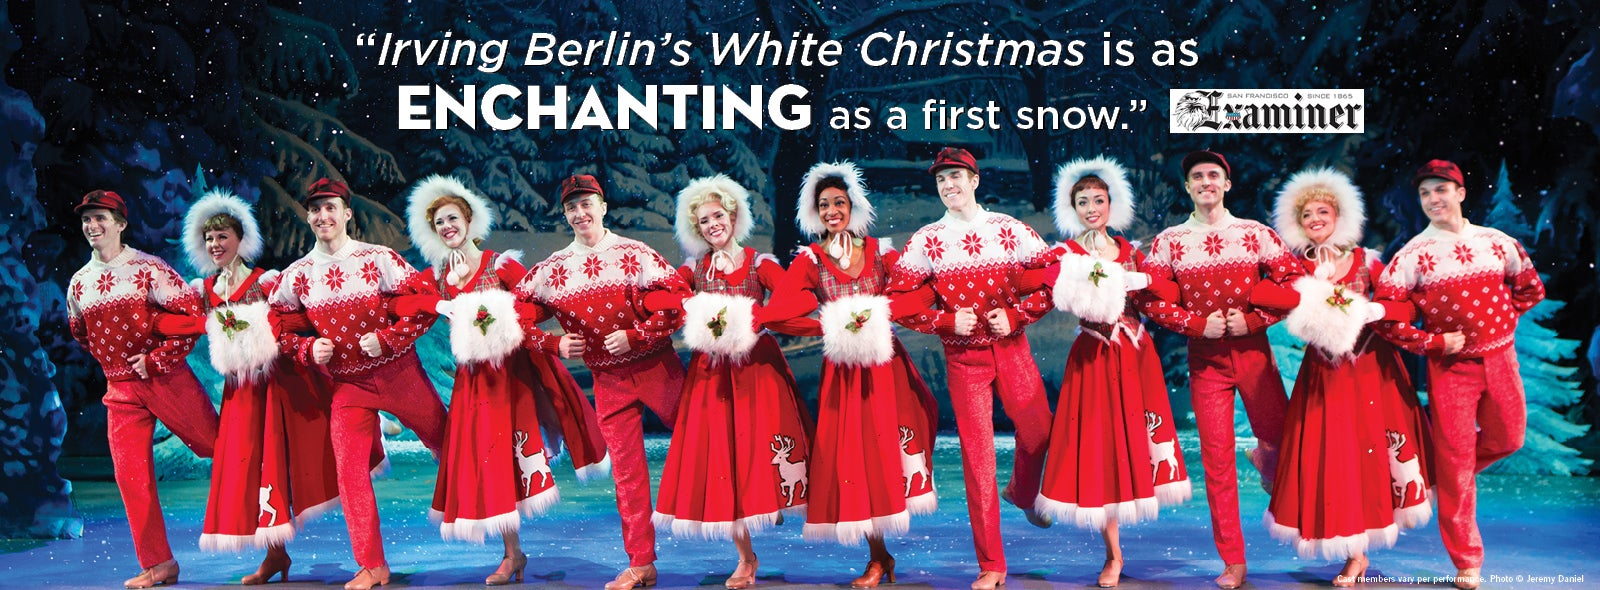 White Christmas Irving Berling.Irving Berlin S White Christmas Dpac Official Site